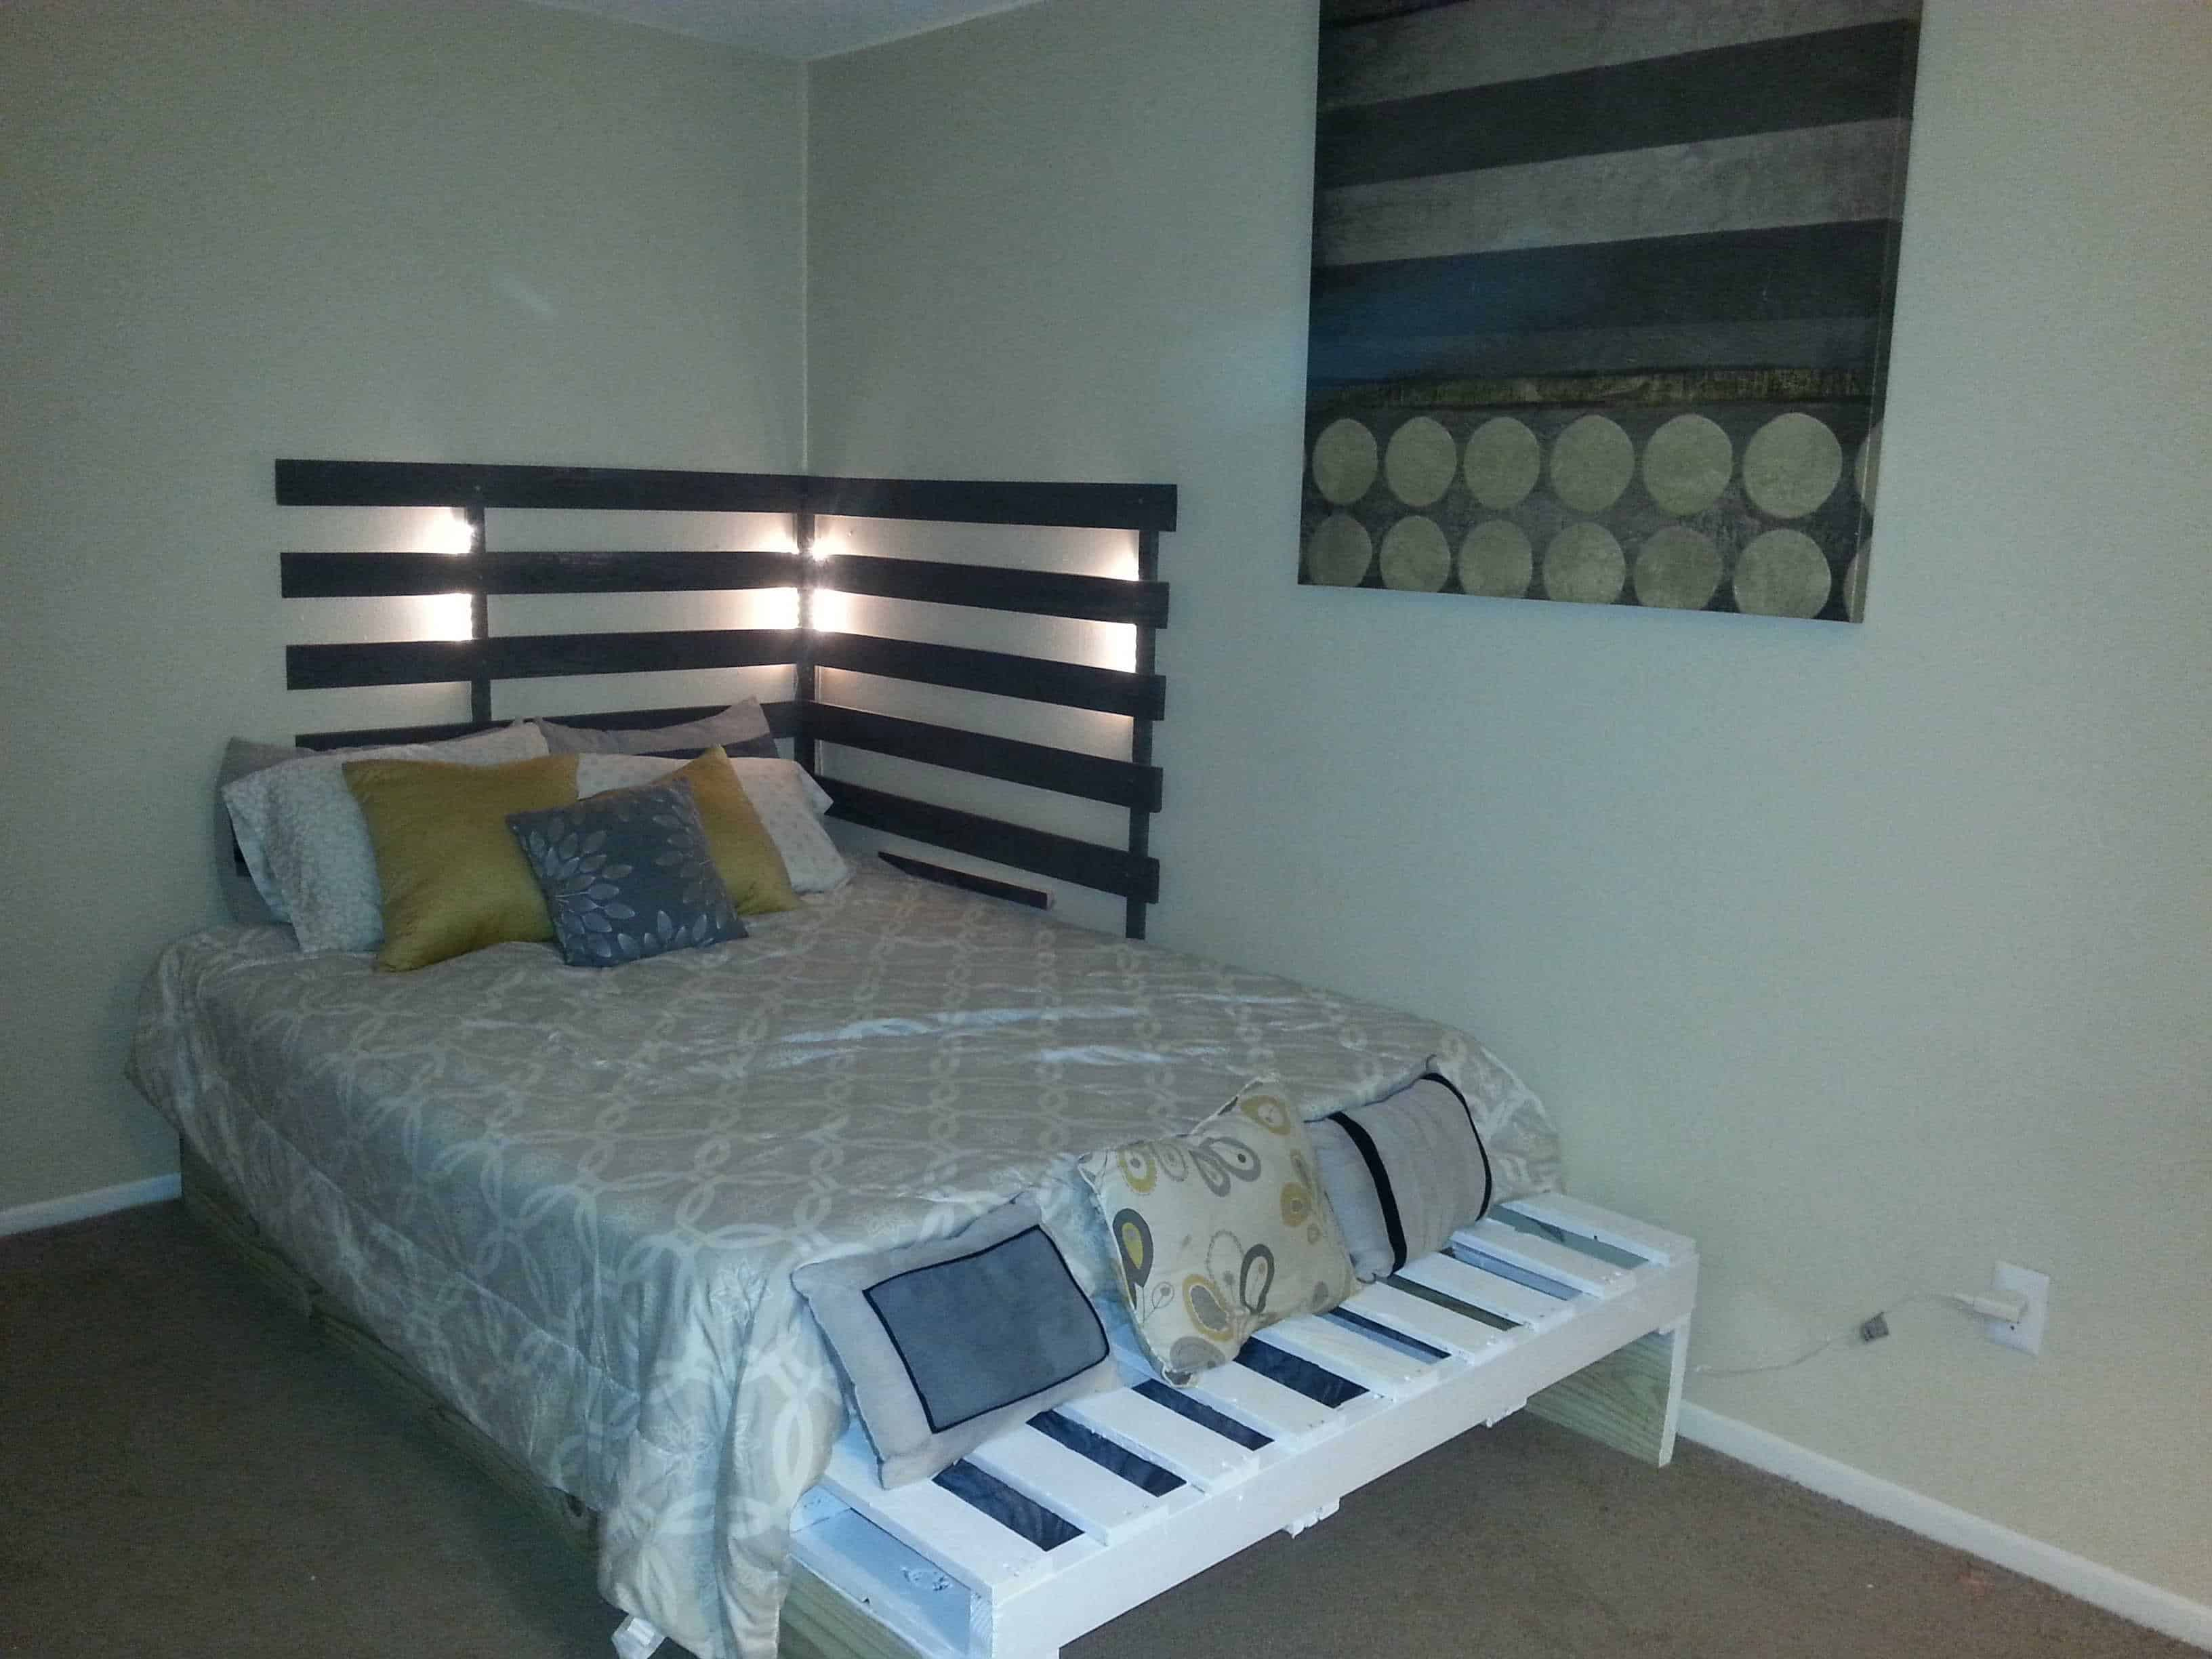 queen bed from 3 pallets • pallet ideas • 1001 pallets